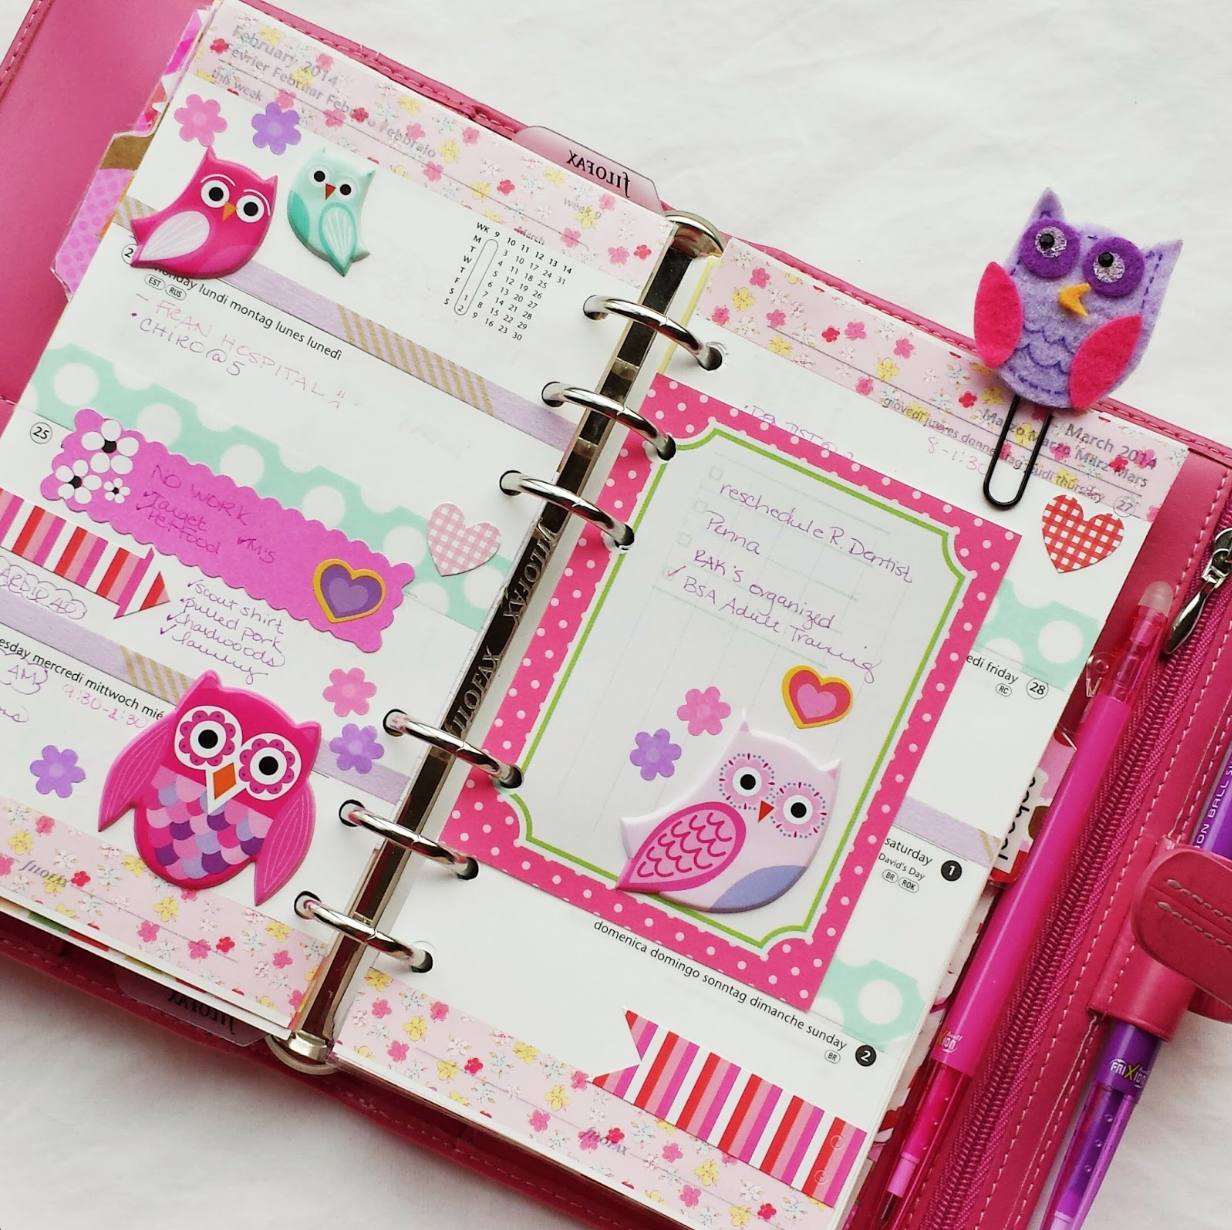 mambi puffy owl stickers used for cute filofax decoration.  Filofaxing and scrapbooking combo.